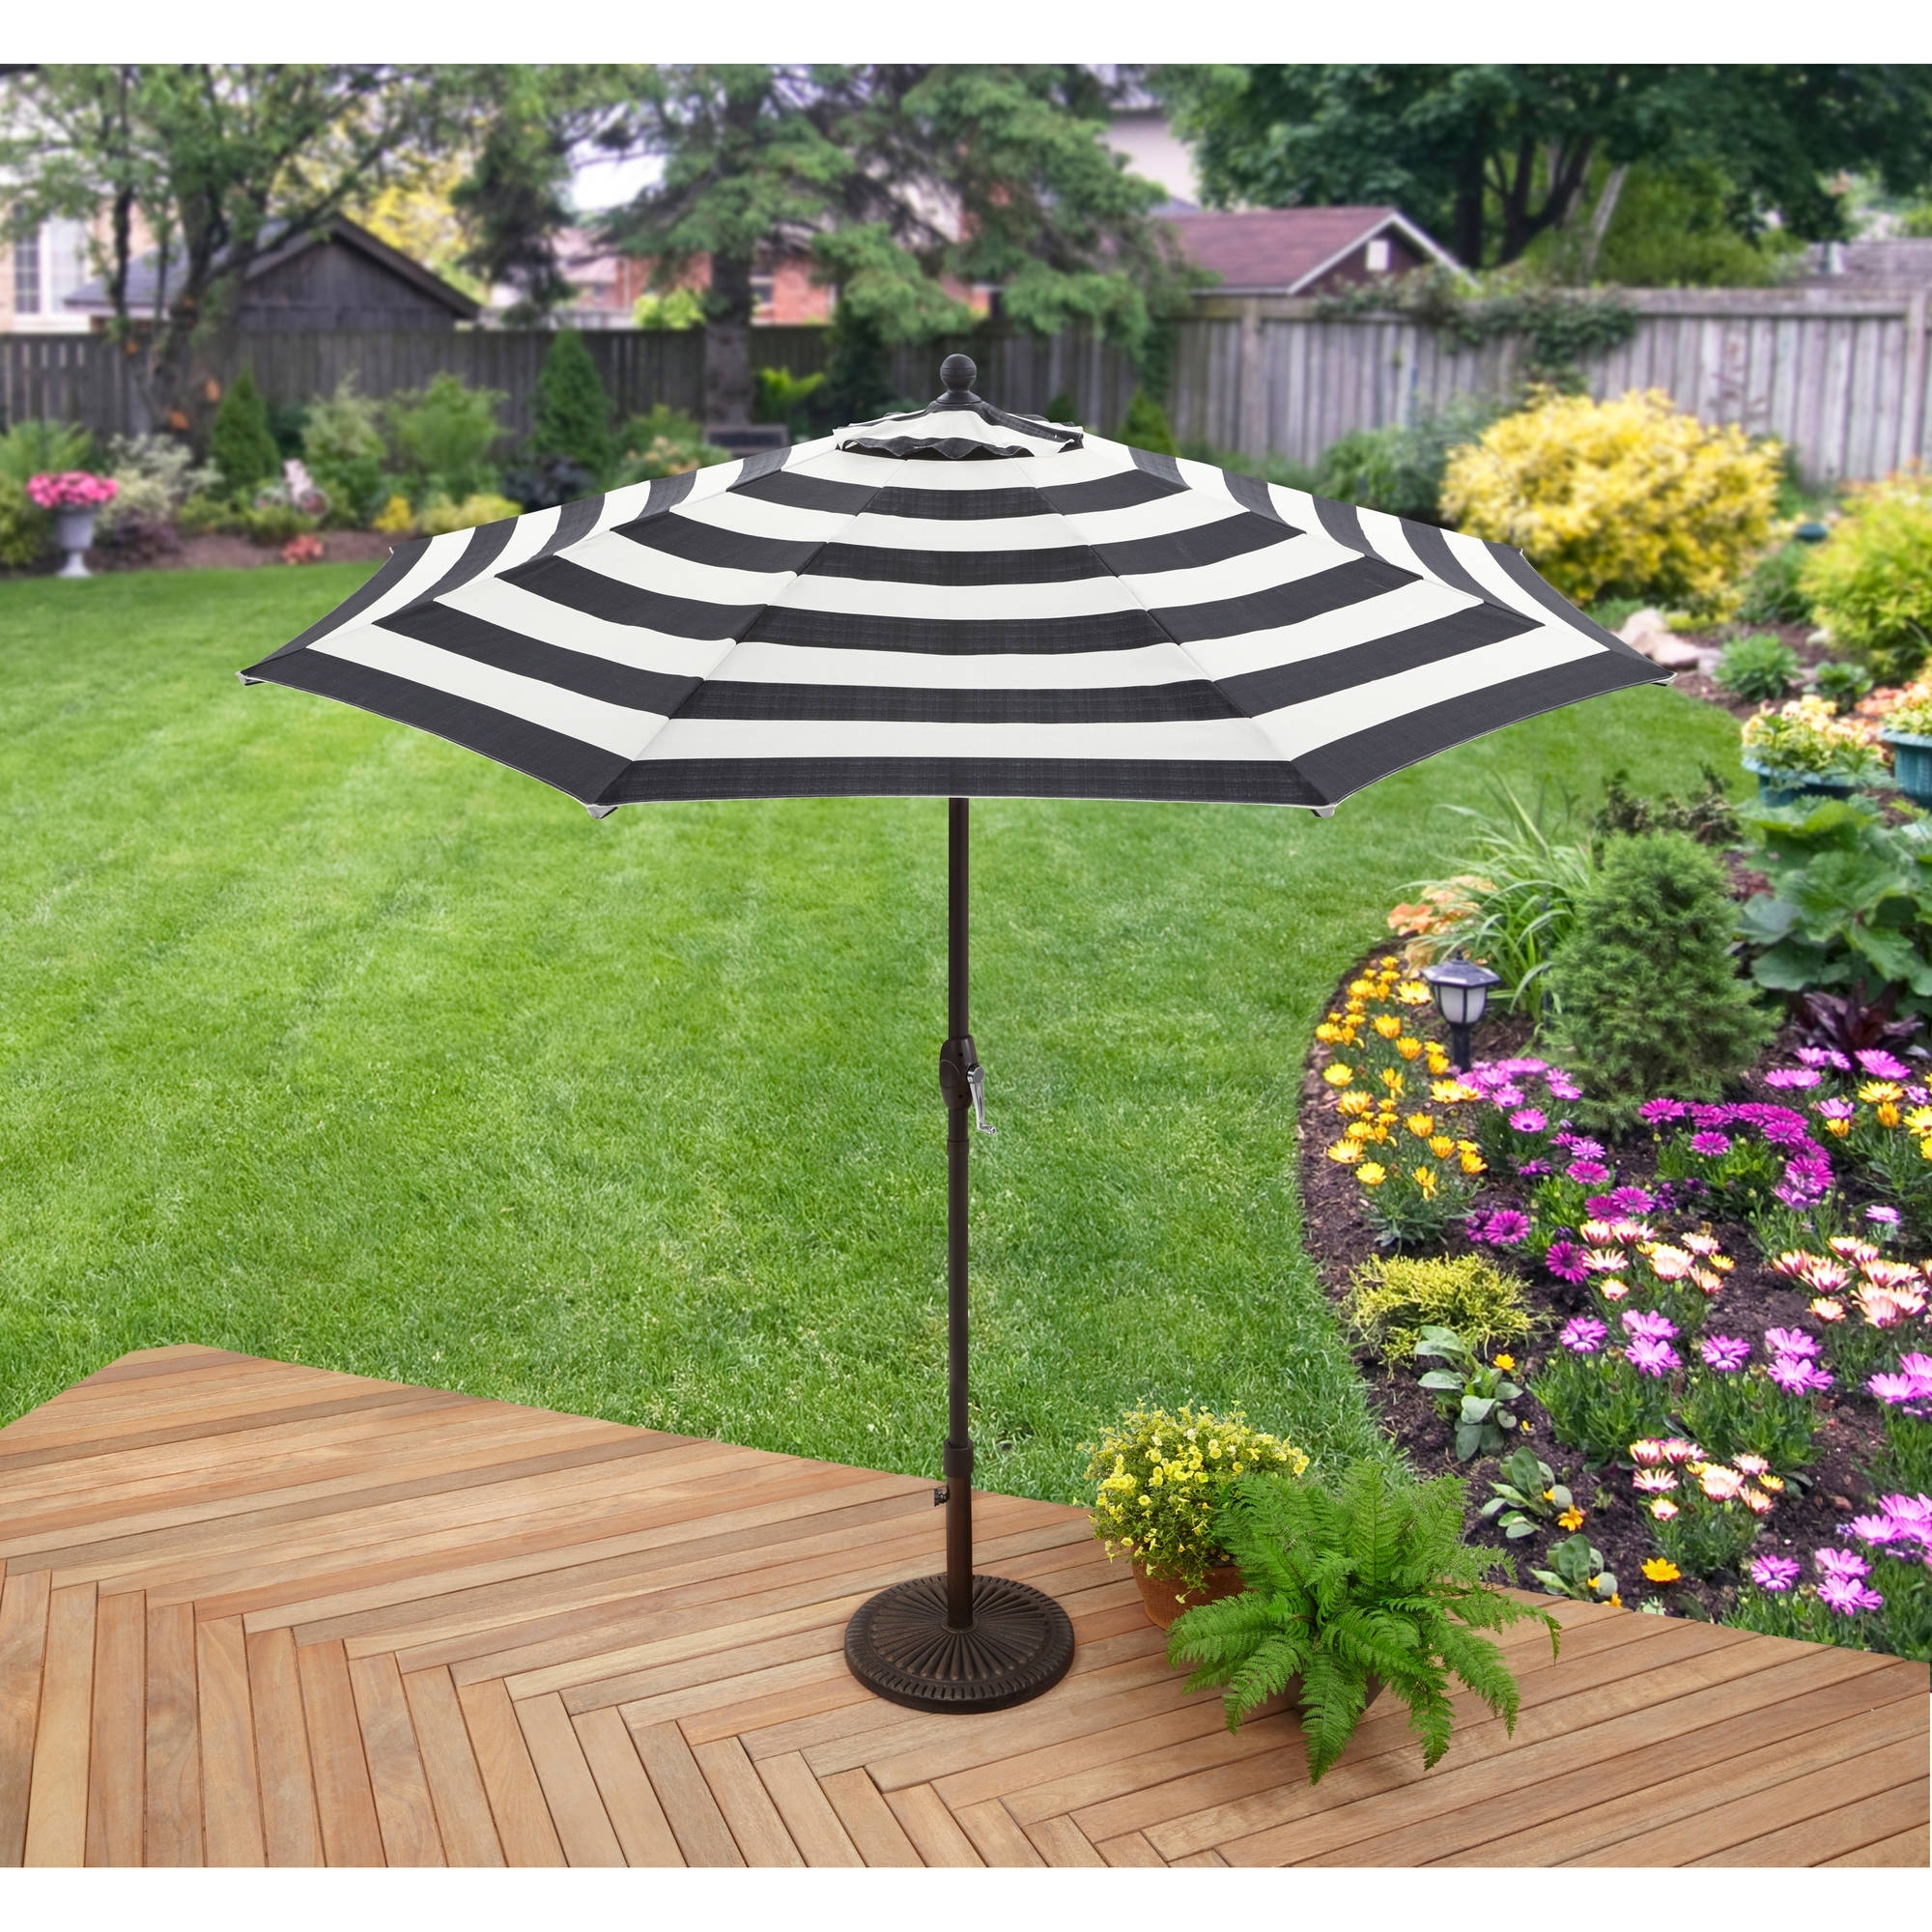 2019 Walmart Umbrellas Patio With Better Homes And Gardens 9' Market Umbrella, Cabana Stripe – Walmart (View 8 of 20)